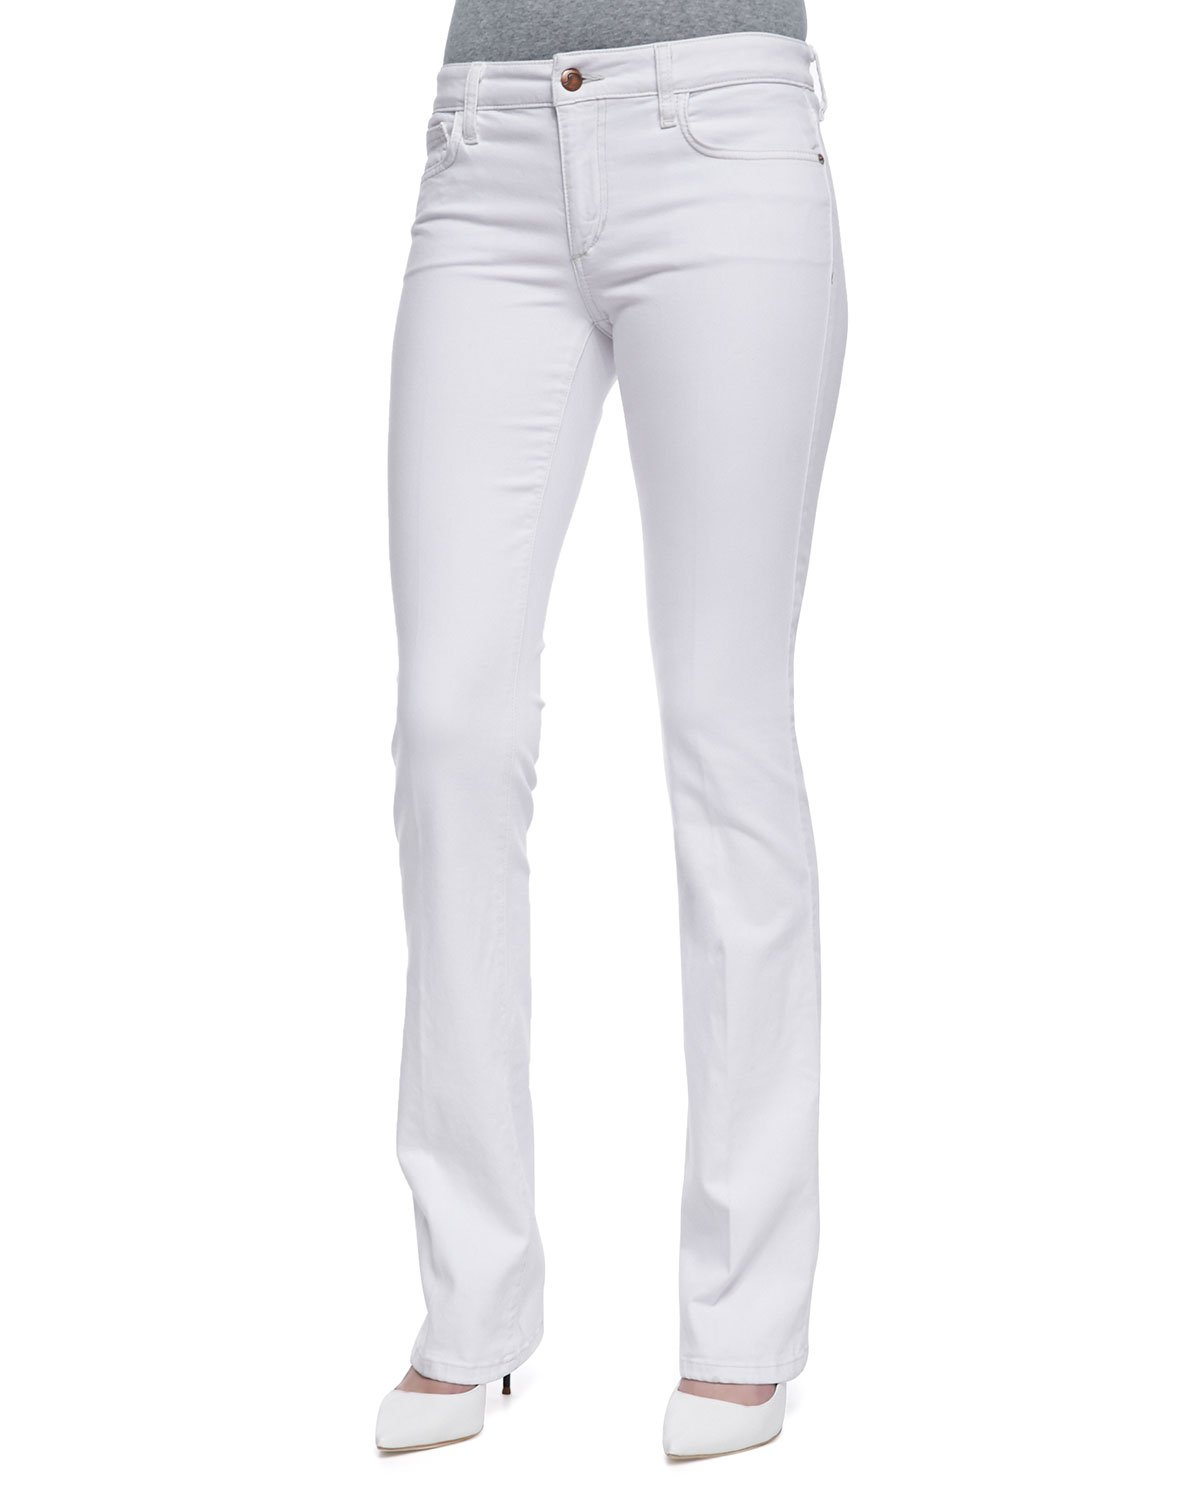 Why not pick a pair of boyfriend jeans and add a crisp, white Tee with sneakers for an afternoon at the park. Whatever your look, JCPenney has an affordable, modern option for every woman. Casual Boyfriend Jeans. Wherever you wear bootcut jeans, JCPenney has the right option for you.